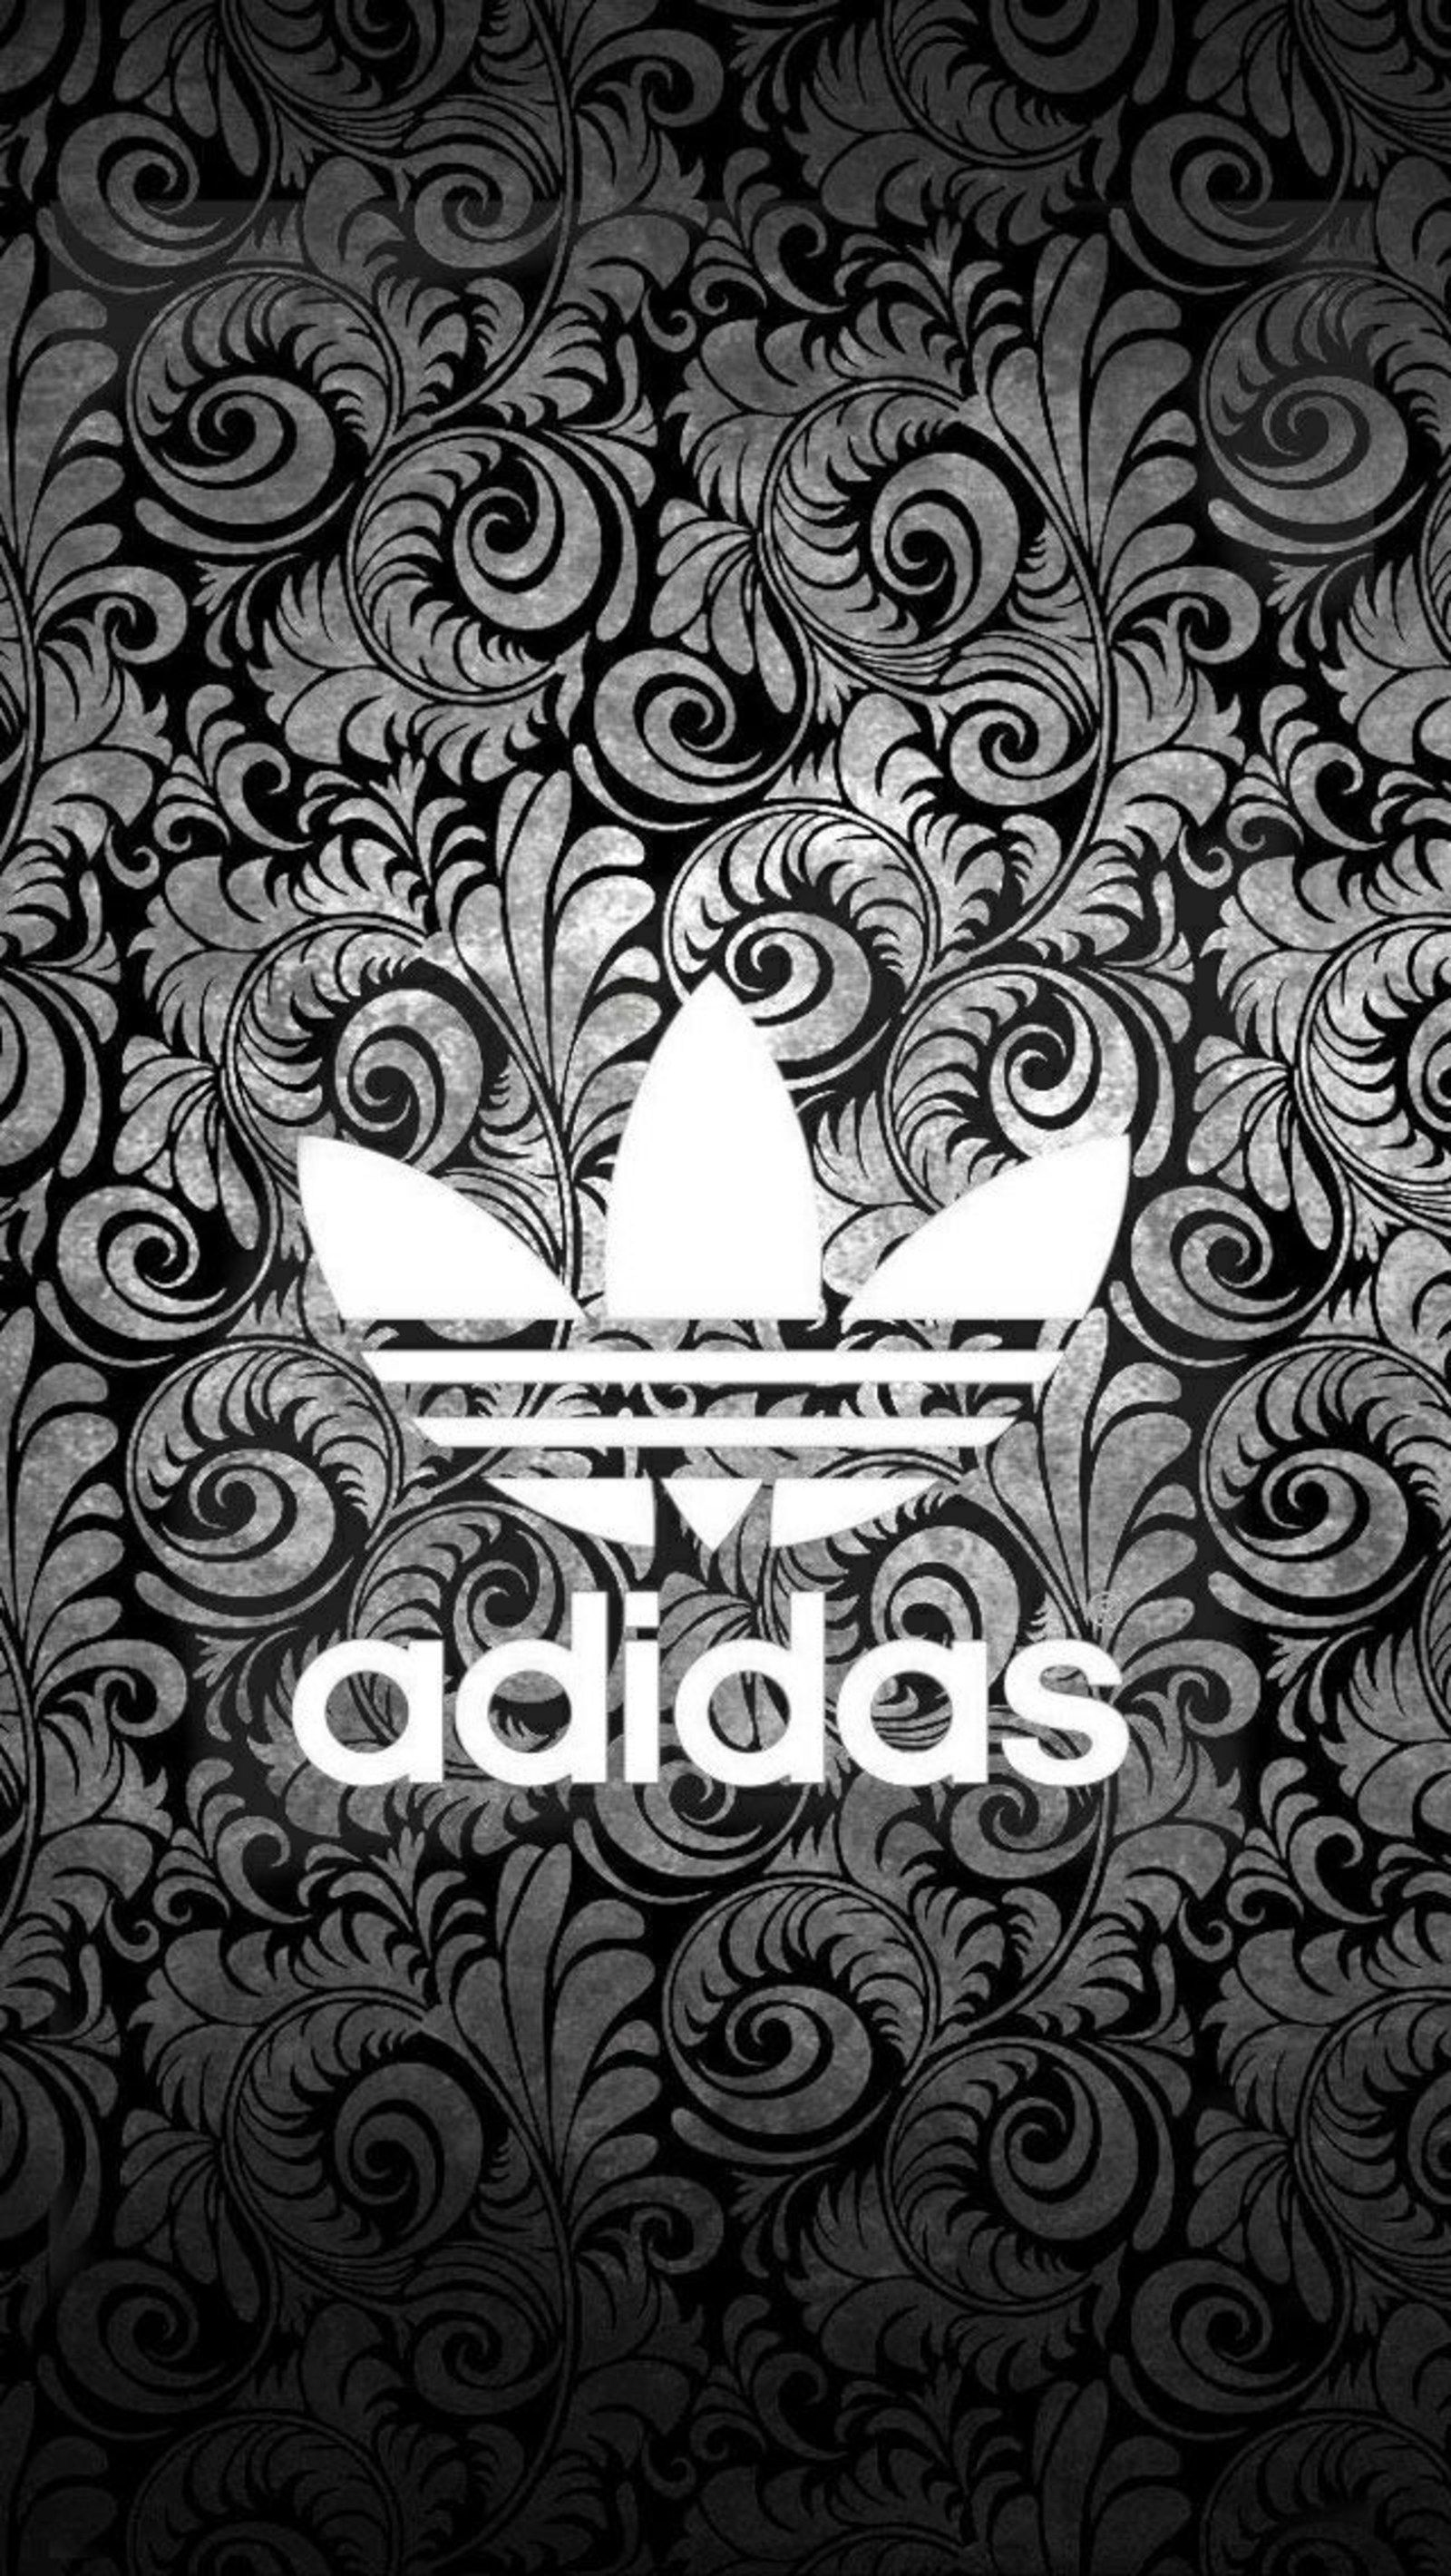 Iphone Wallpaper Swag 01 Adidas Iphone Wallpaper Adidas Wallpapers Adidas Logo Wallpapers